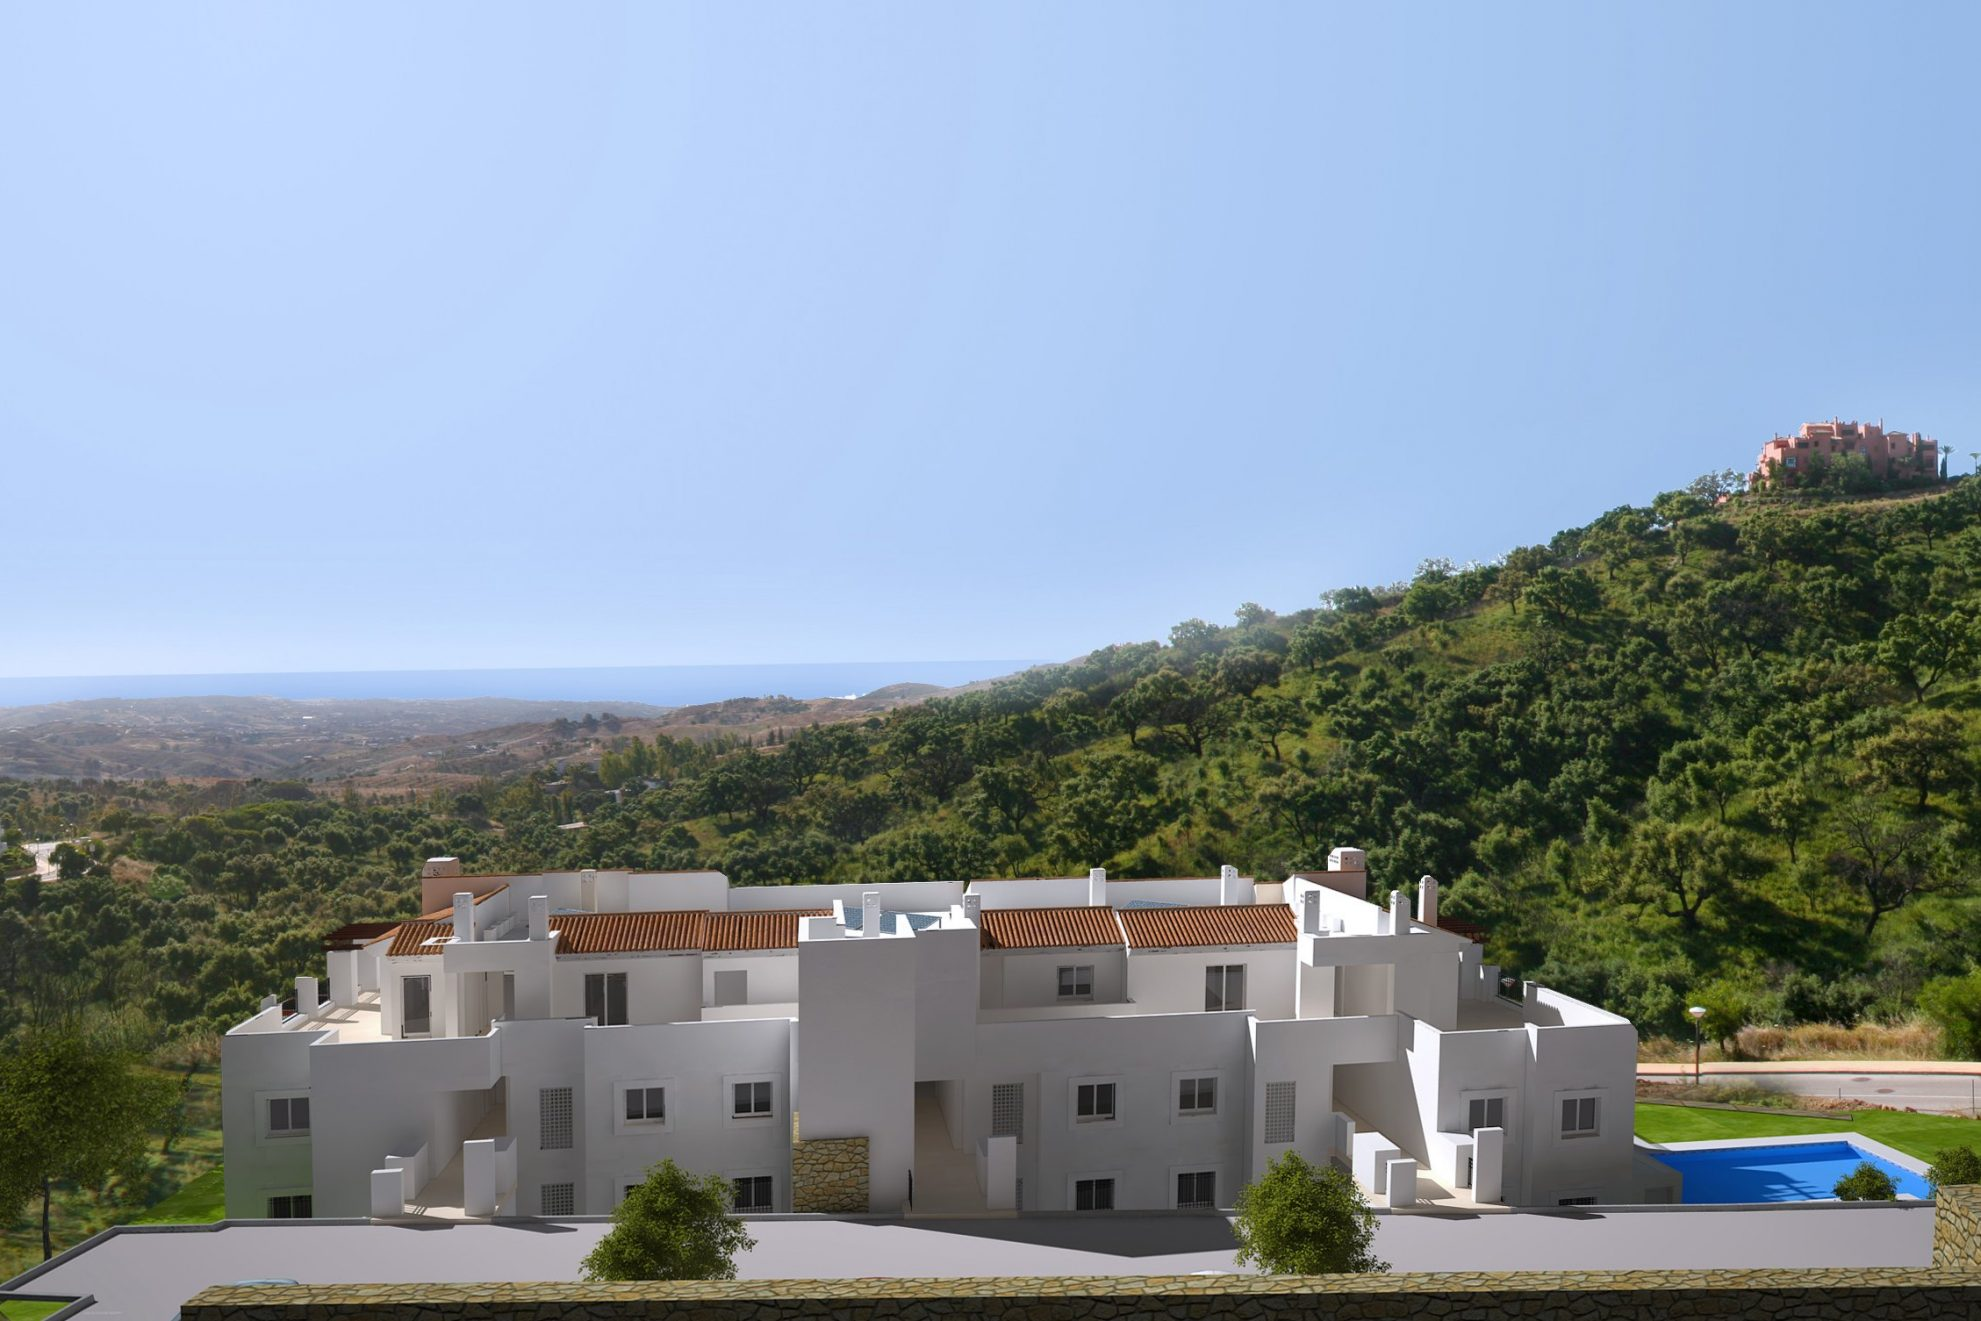 Costa del Sol property development